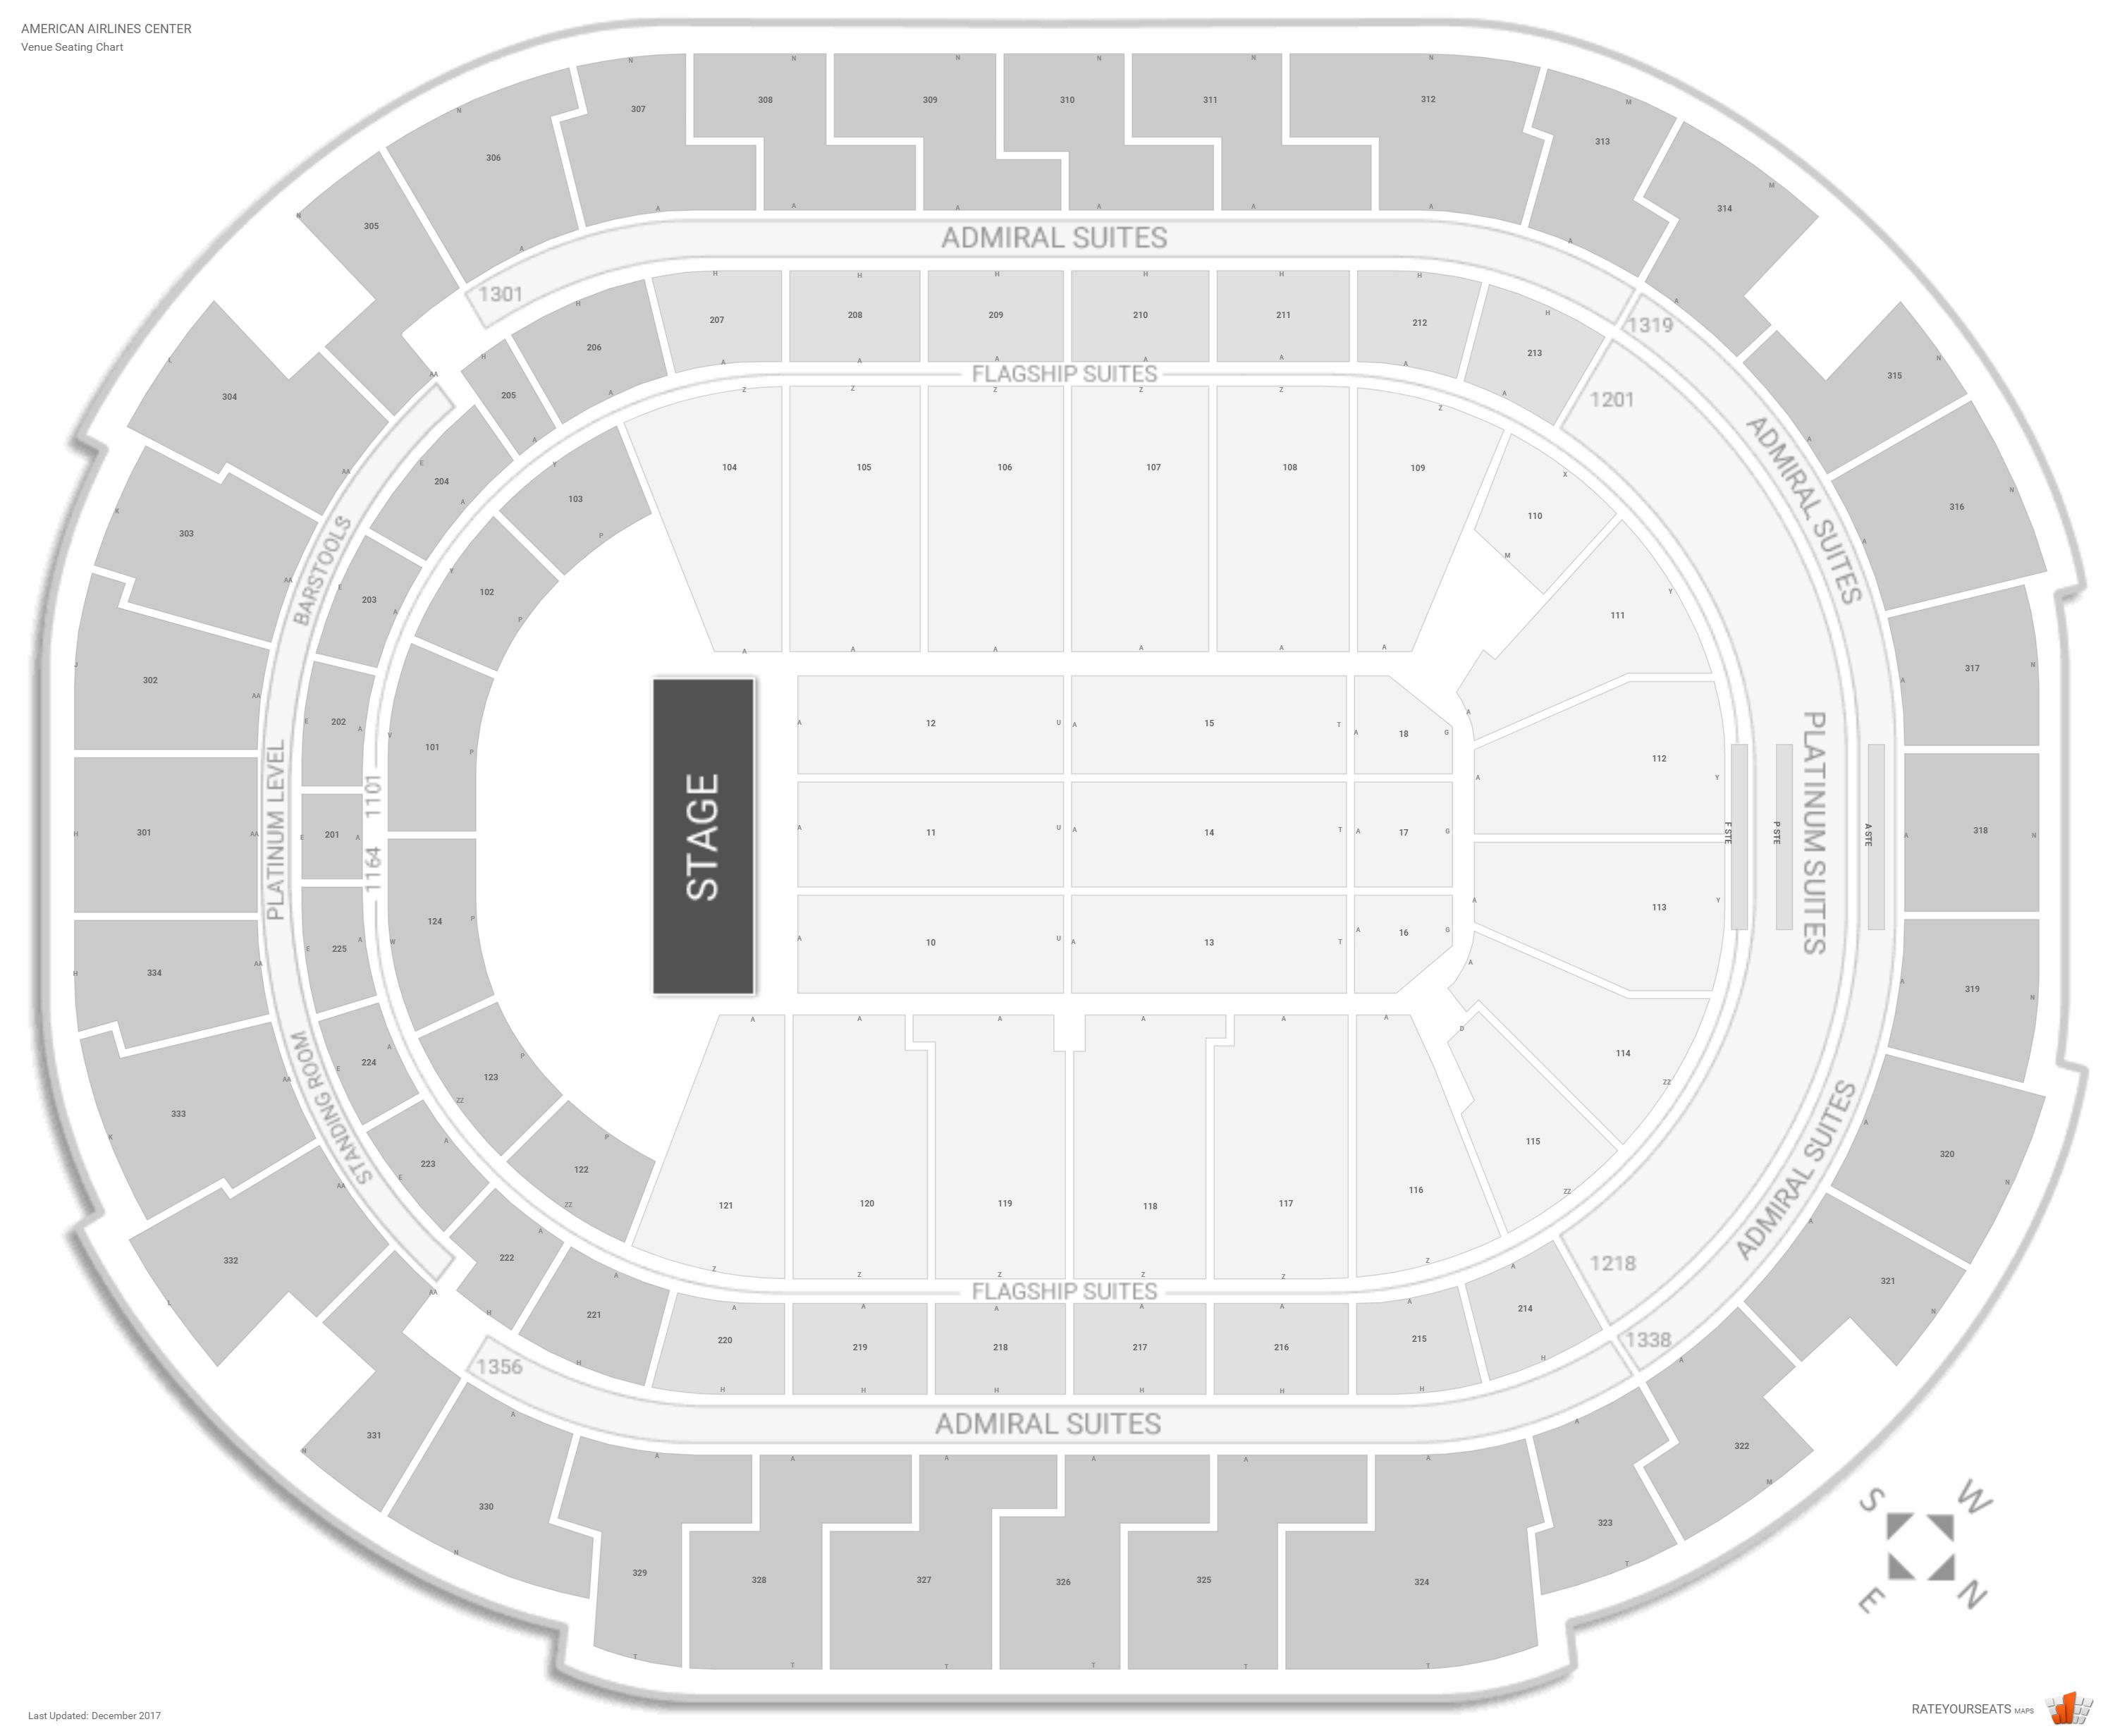 American Airlines Center Concert Seating Guide Rateyourseats Com